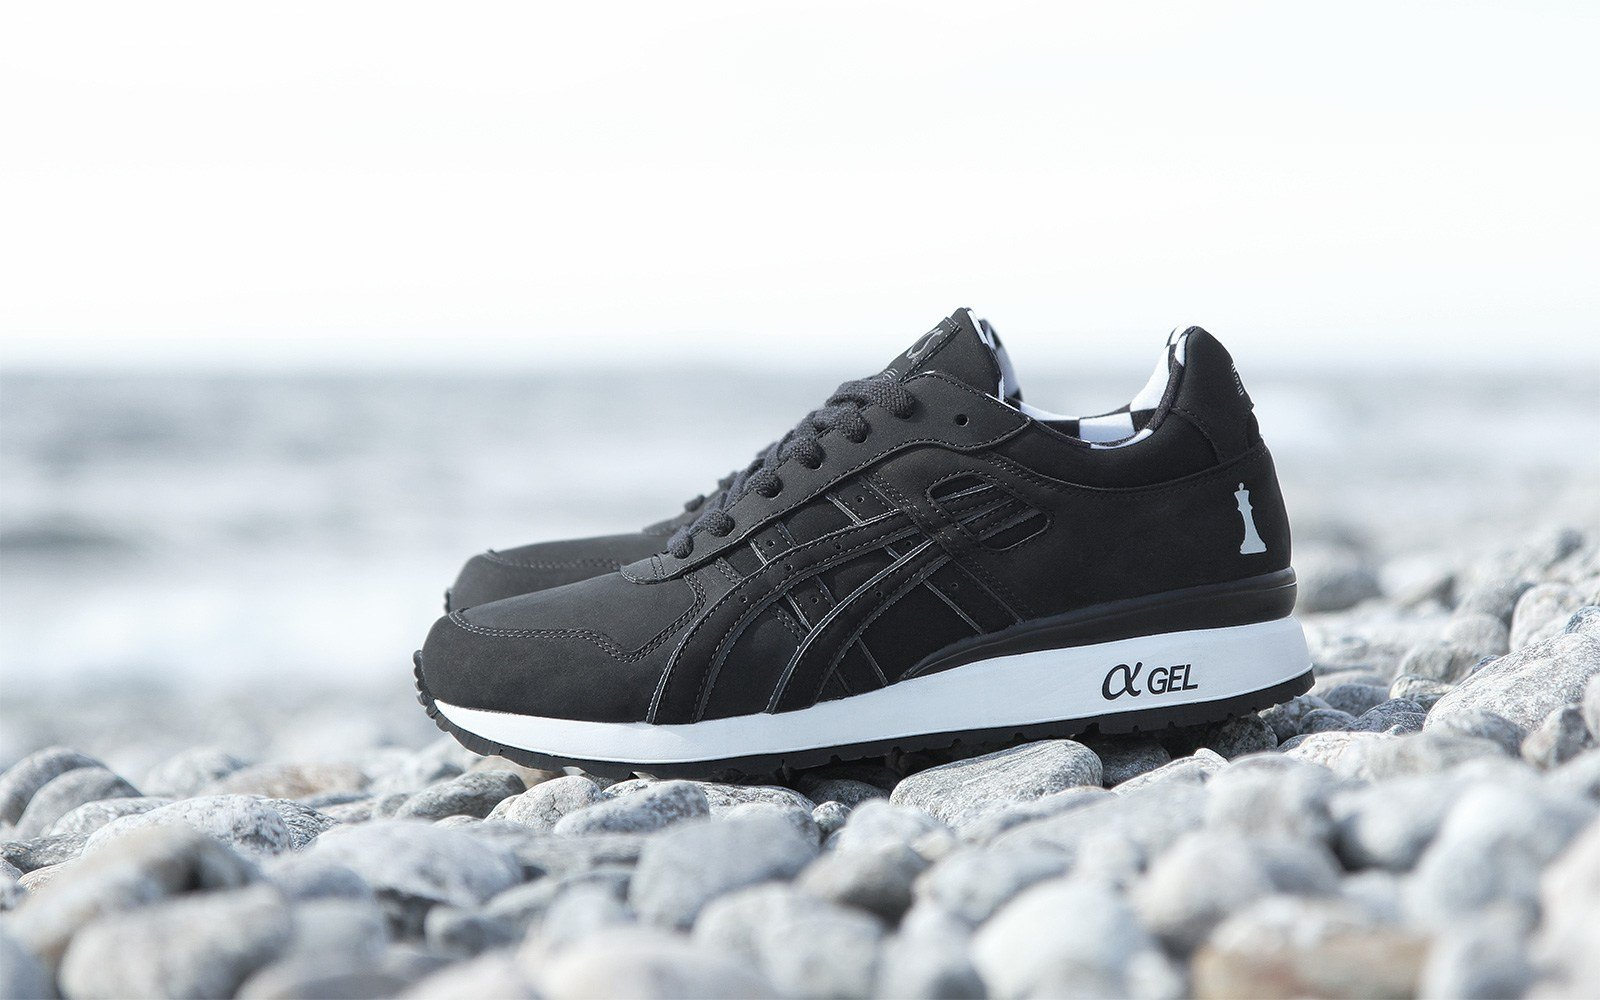 Release Reminder: Sneakersnstuff x ASICS GT-II 'The Seventh Seal'